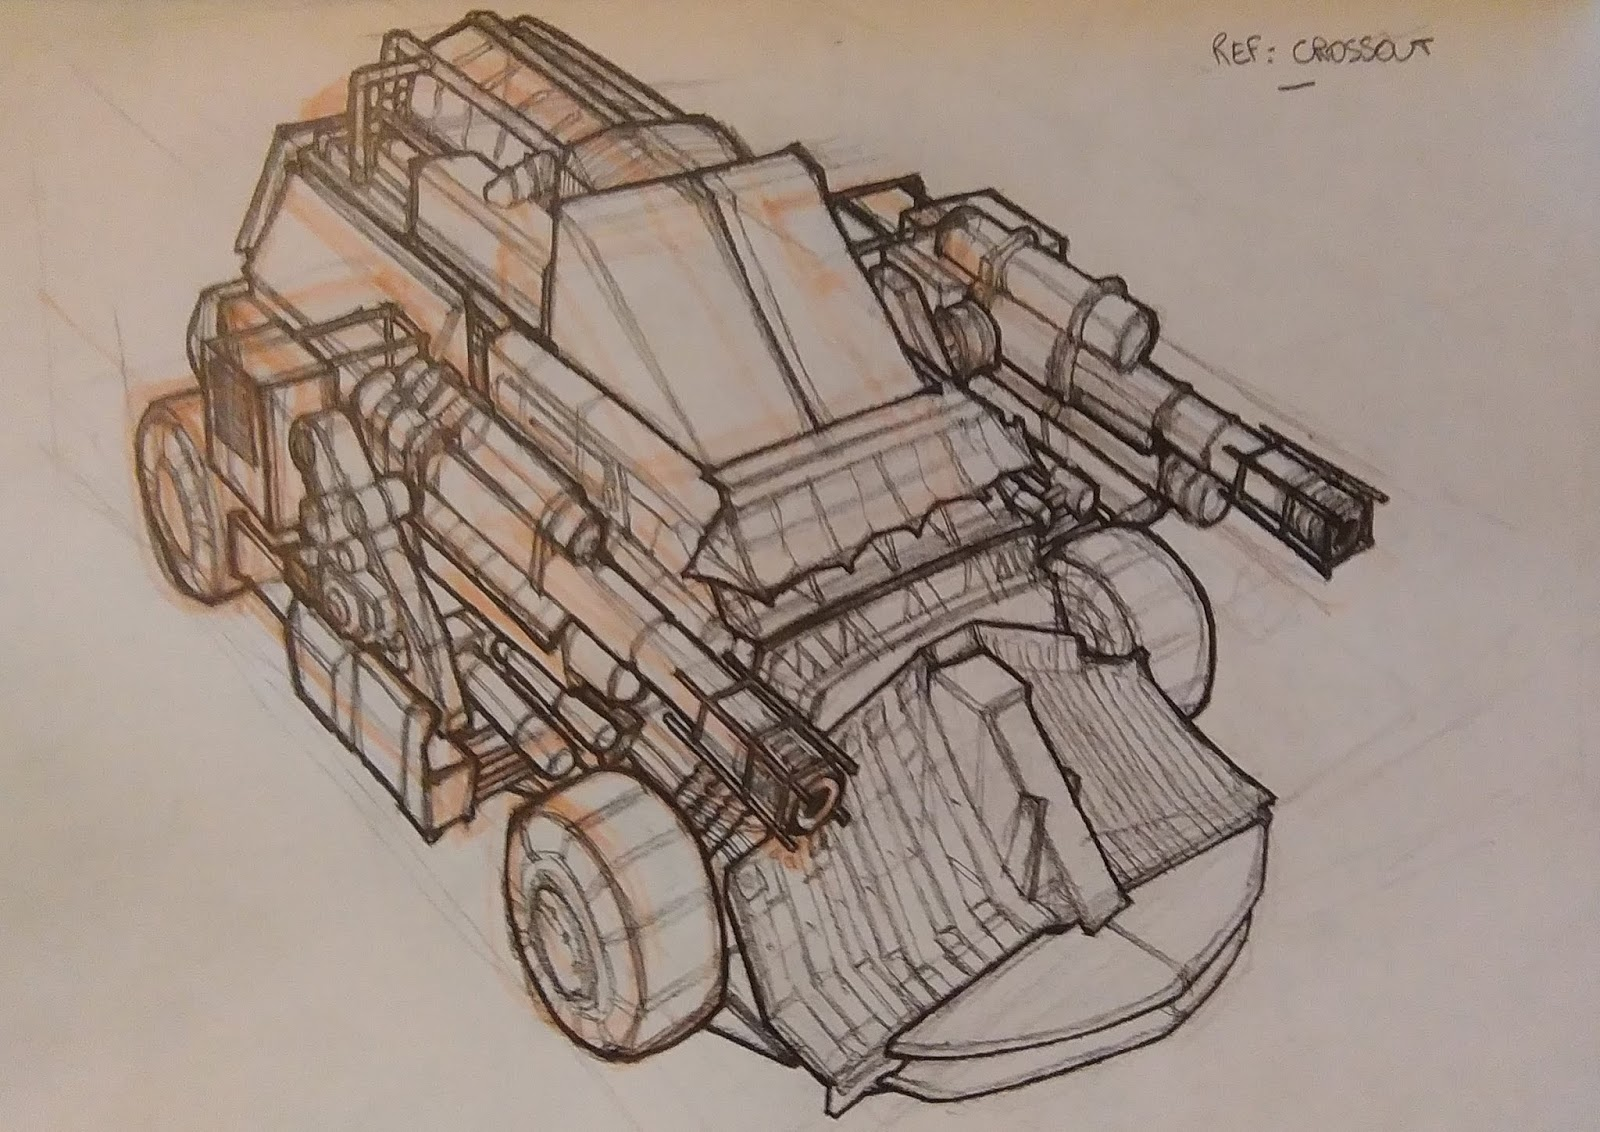 [SPOLYK] - Geometries & sketches - Page 6 Crossout